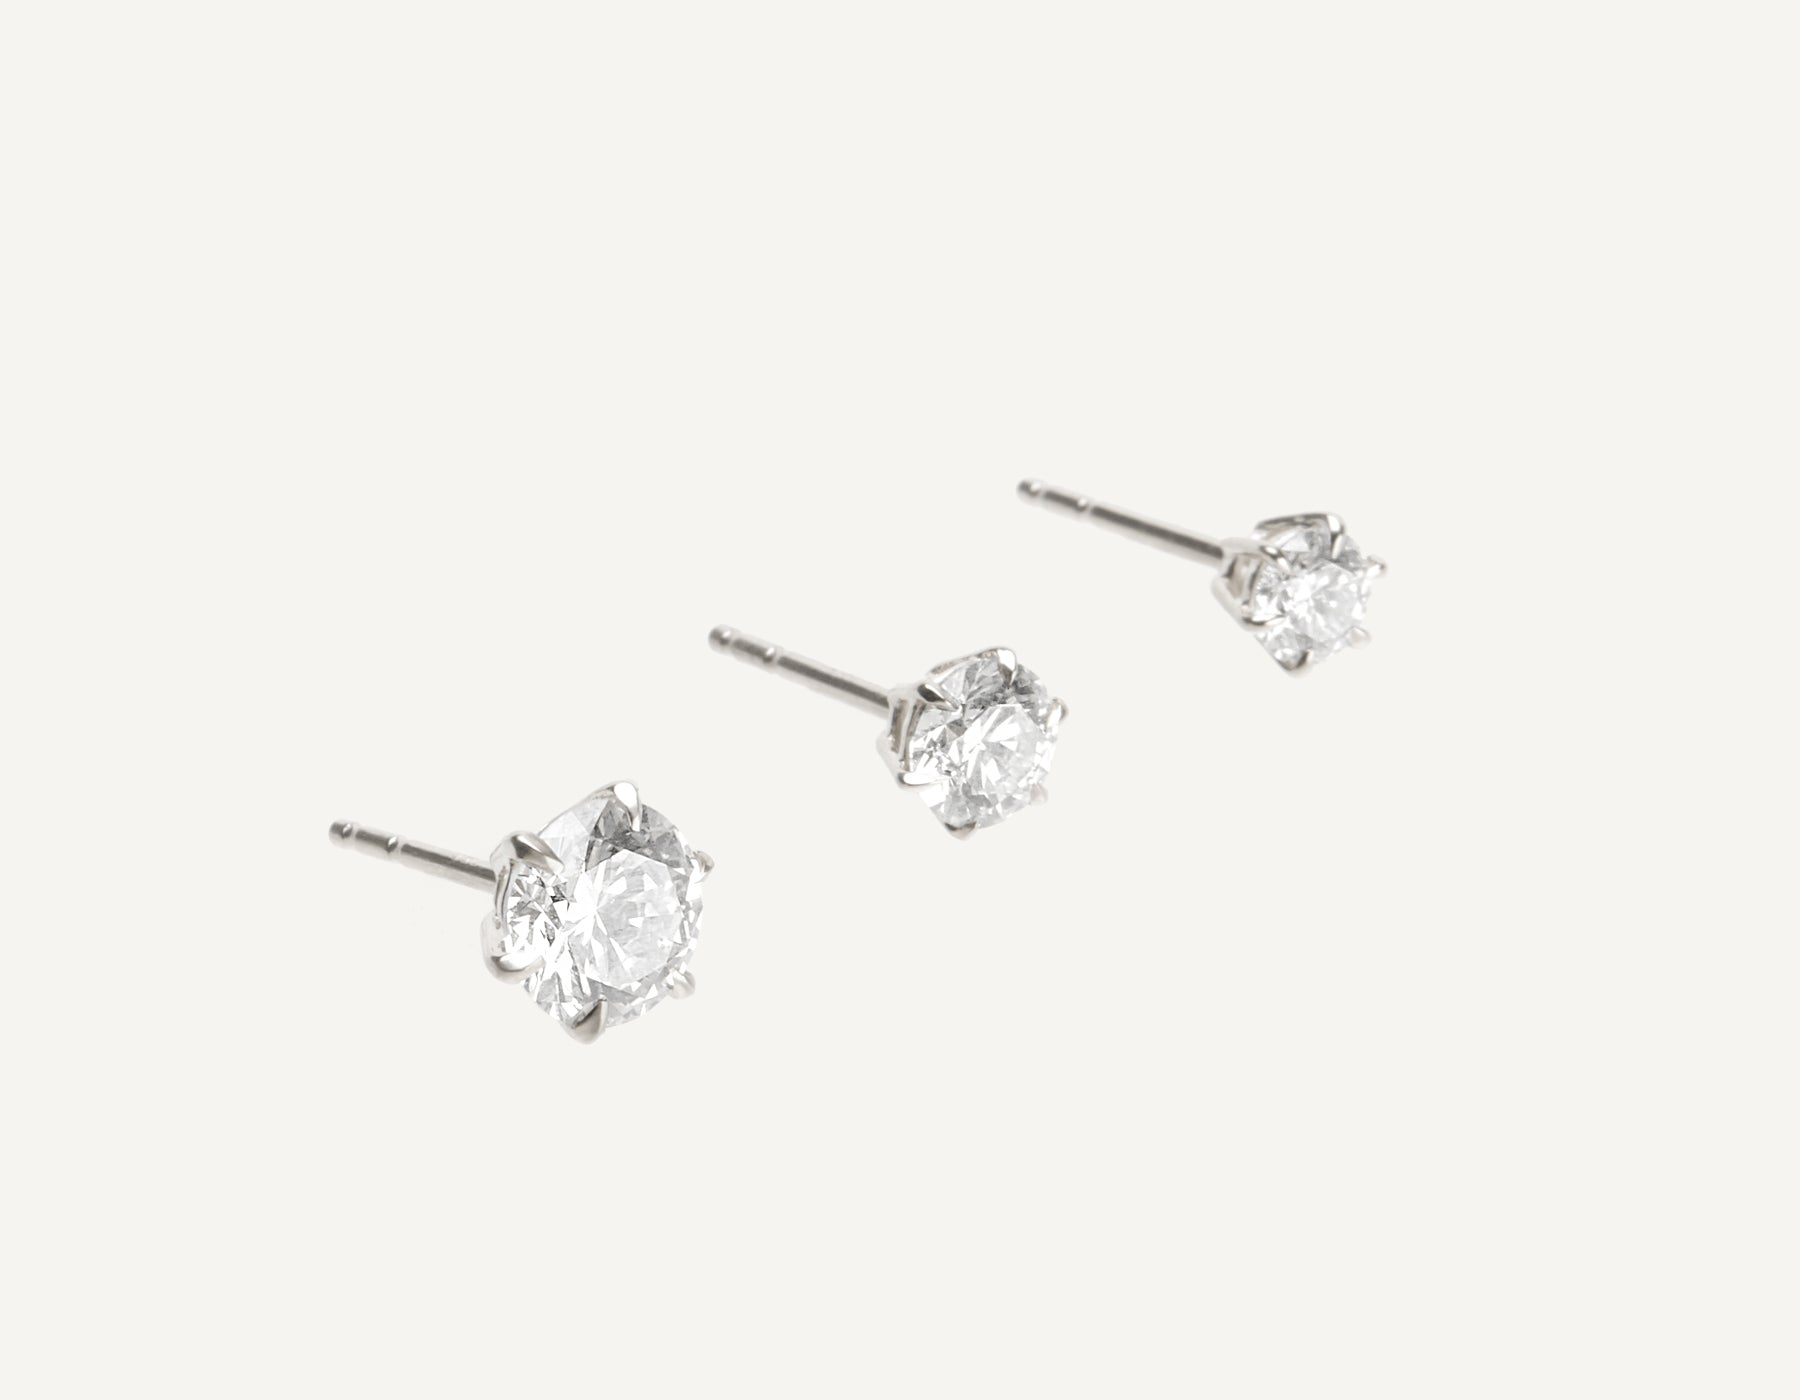 Vrai & Oro 18K Solid Gold Round Brilliant Diamond Earring Post 1 ct .50 ct .25 ct, 18K White Gold